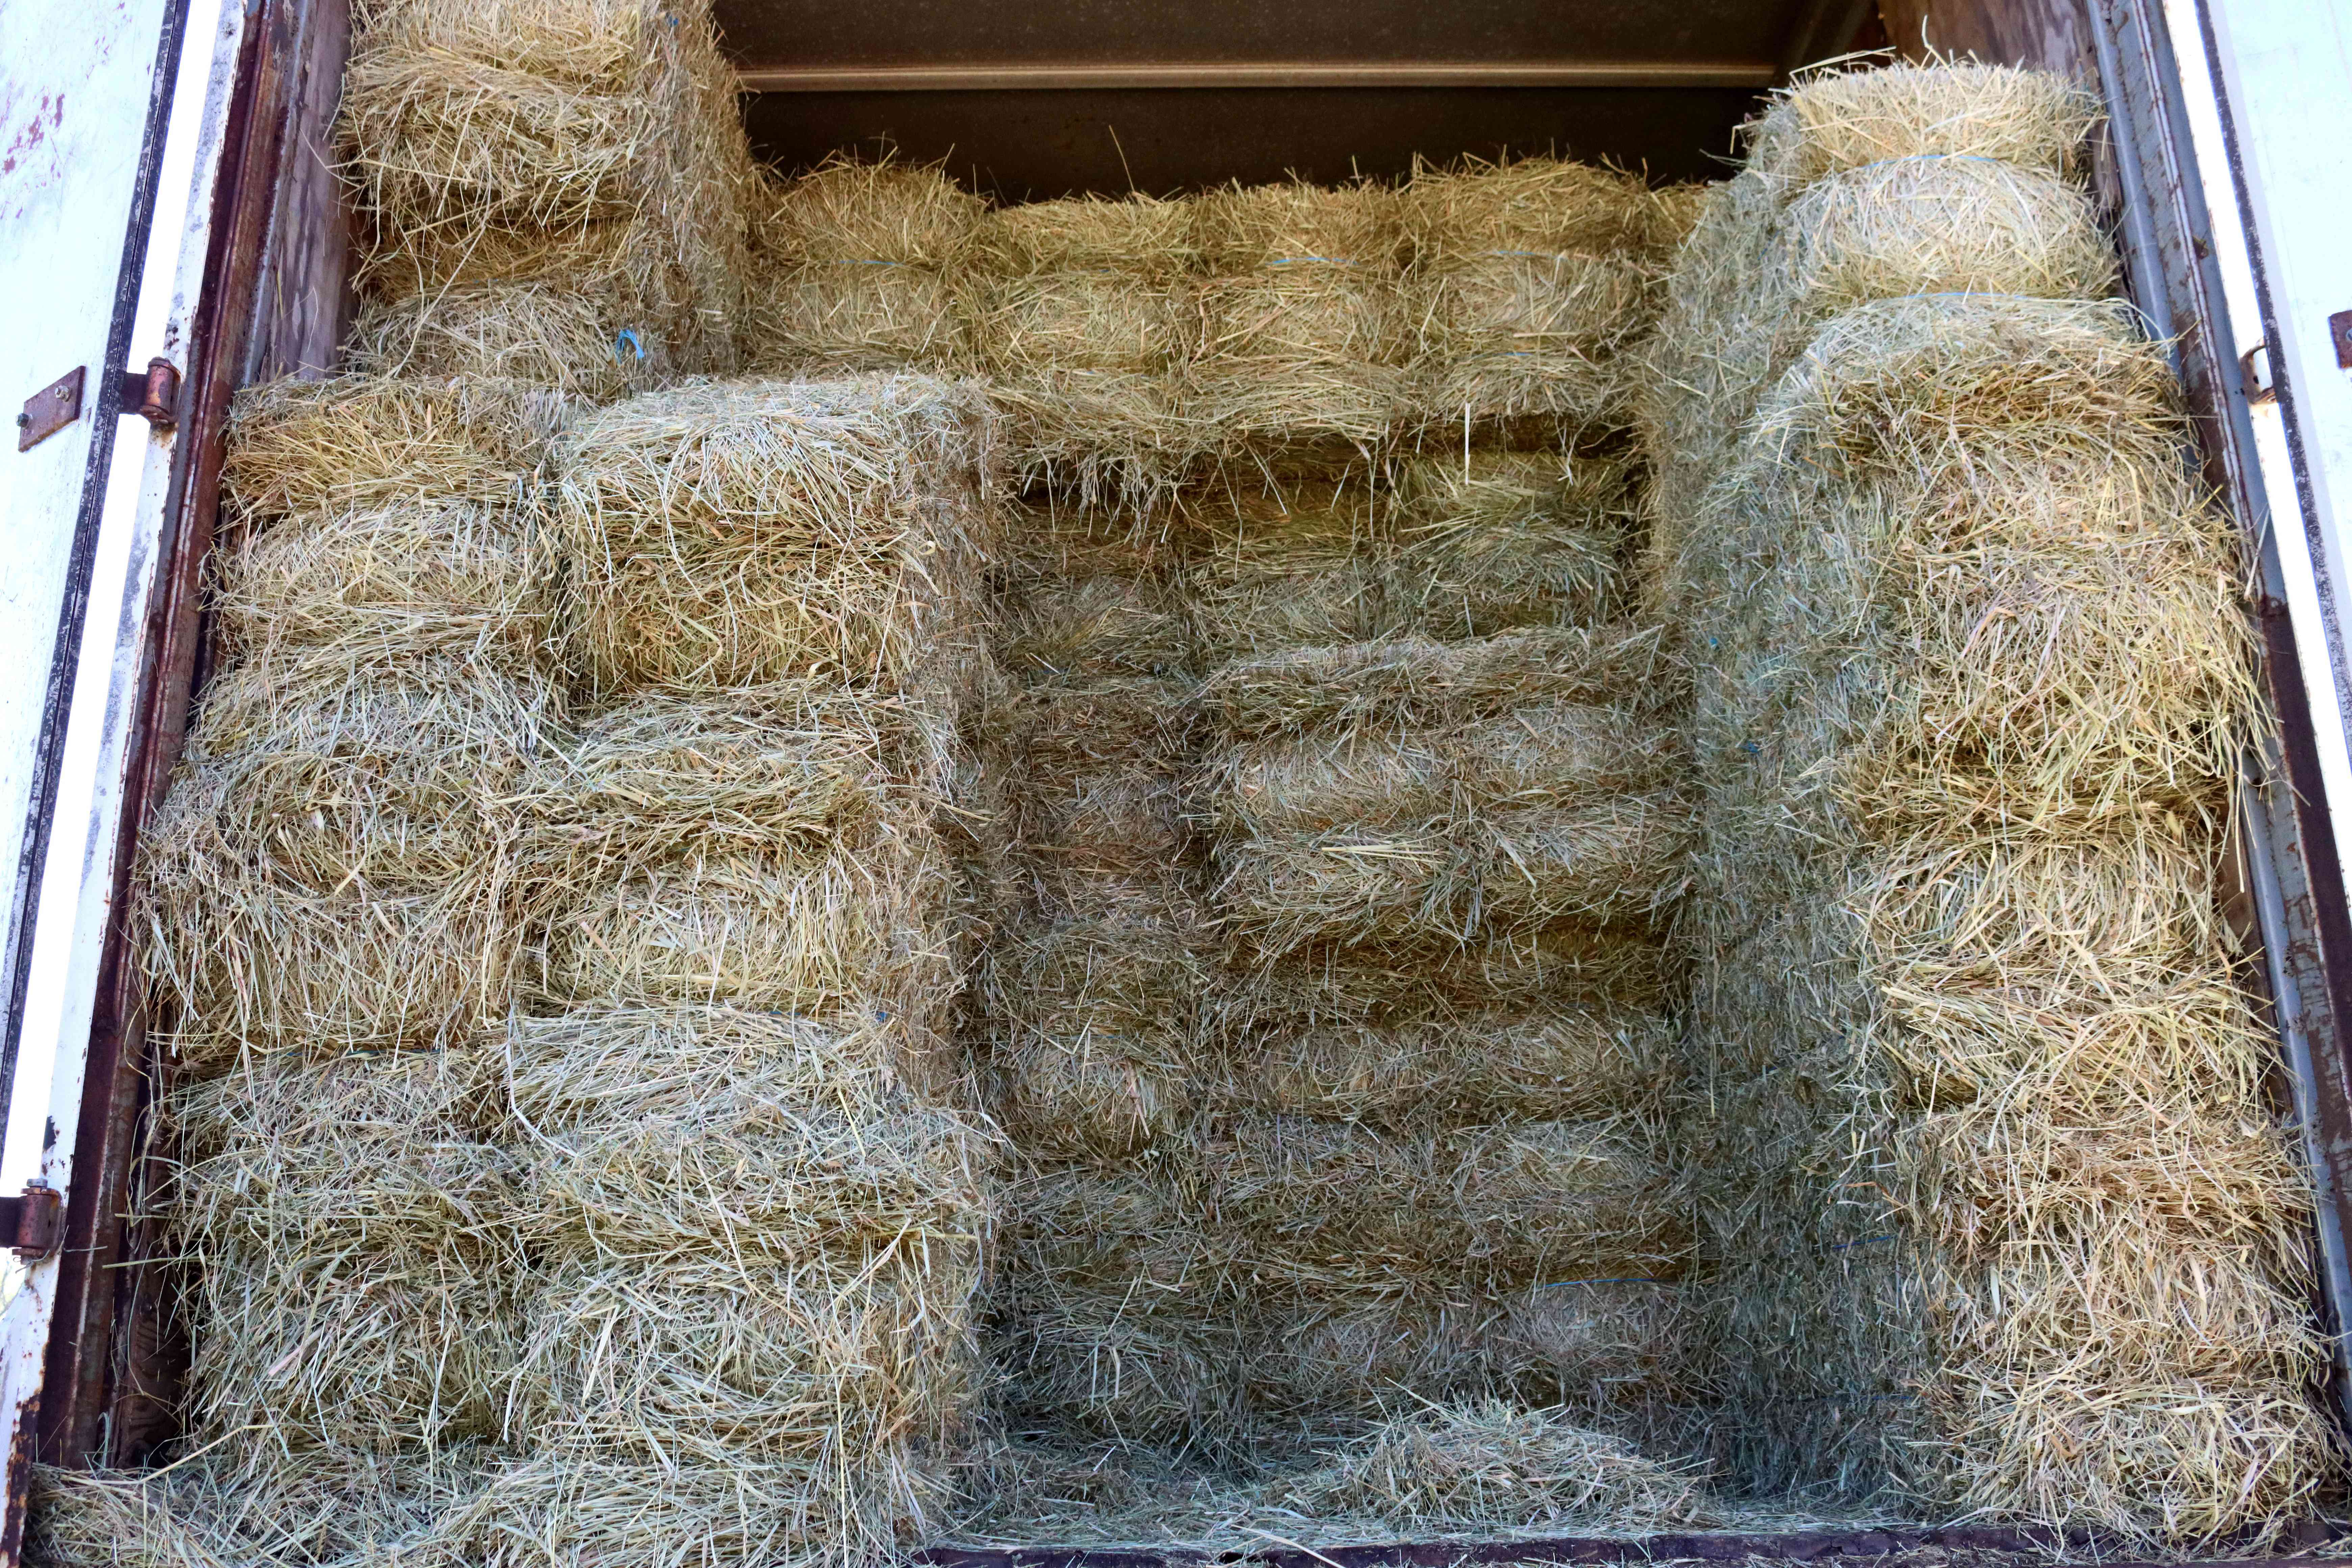 Bales of hay stacked on each other in barn